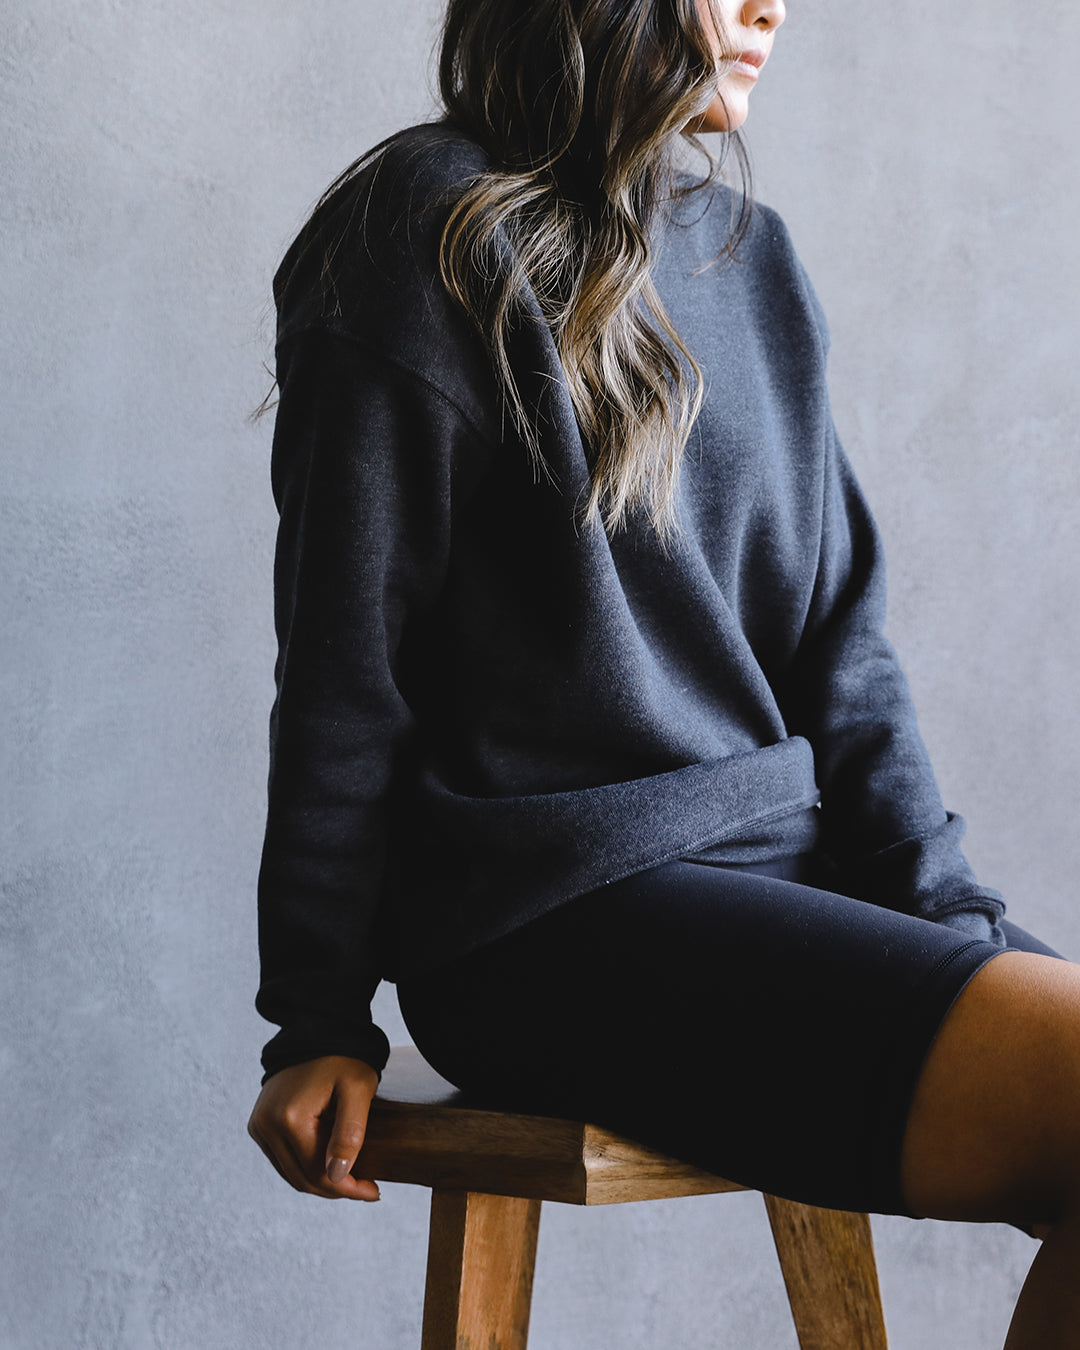 Women's Sweater 001 in Charcoal